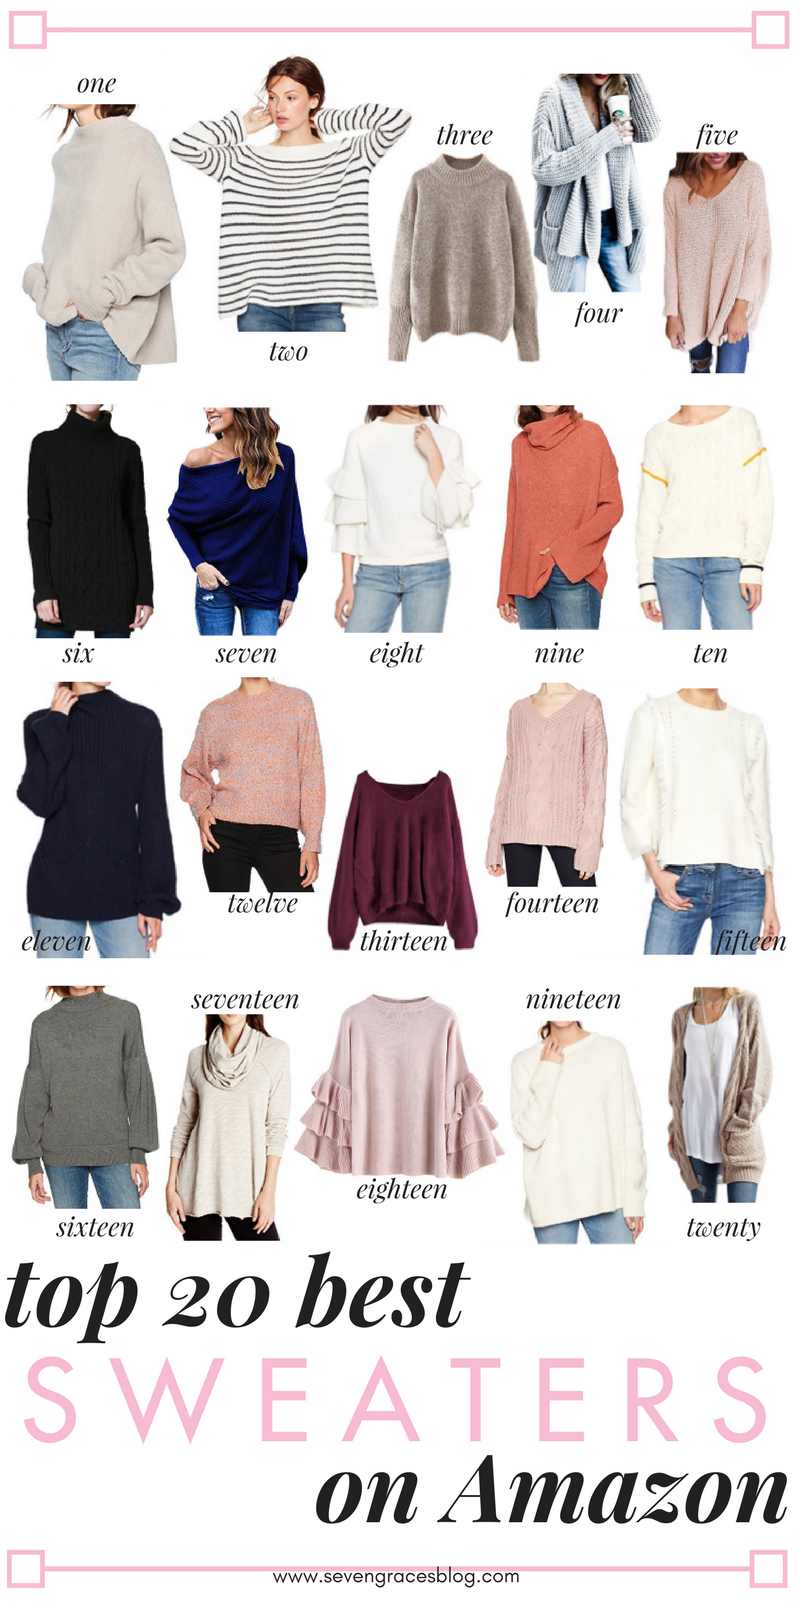 641357b1ced3b1 The best Amazon fashion sweaters. All the best sweaters you ll want this  winter all from Amazon! The best sweaters for work or everyday wear.